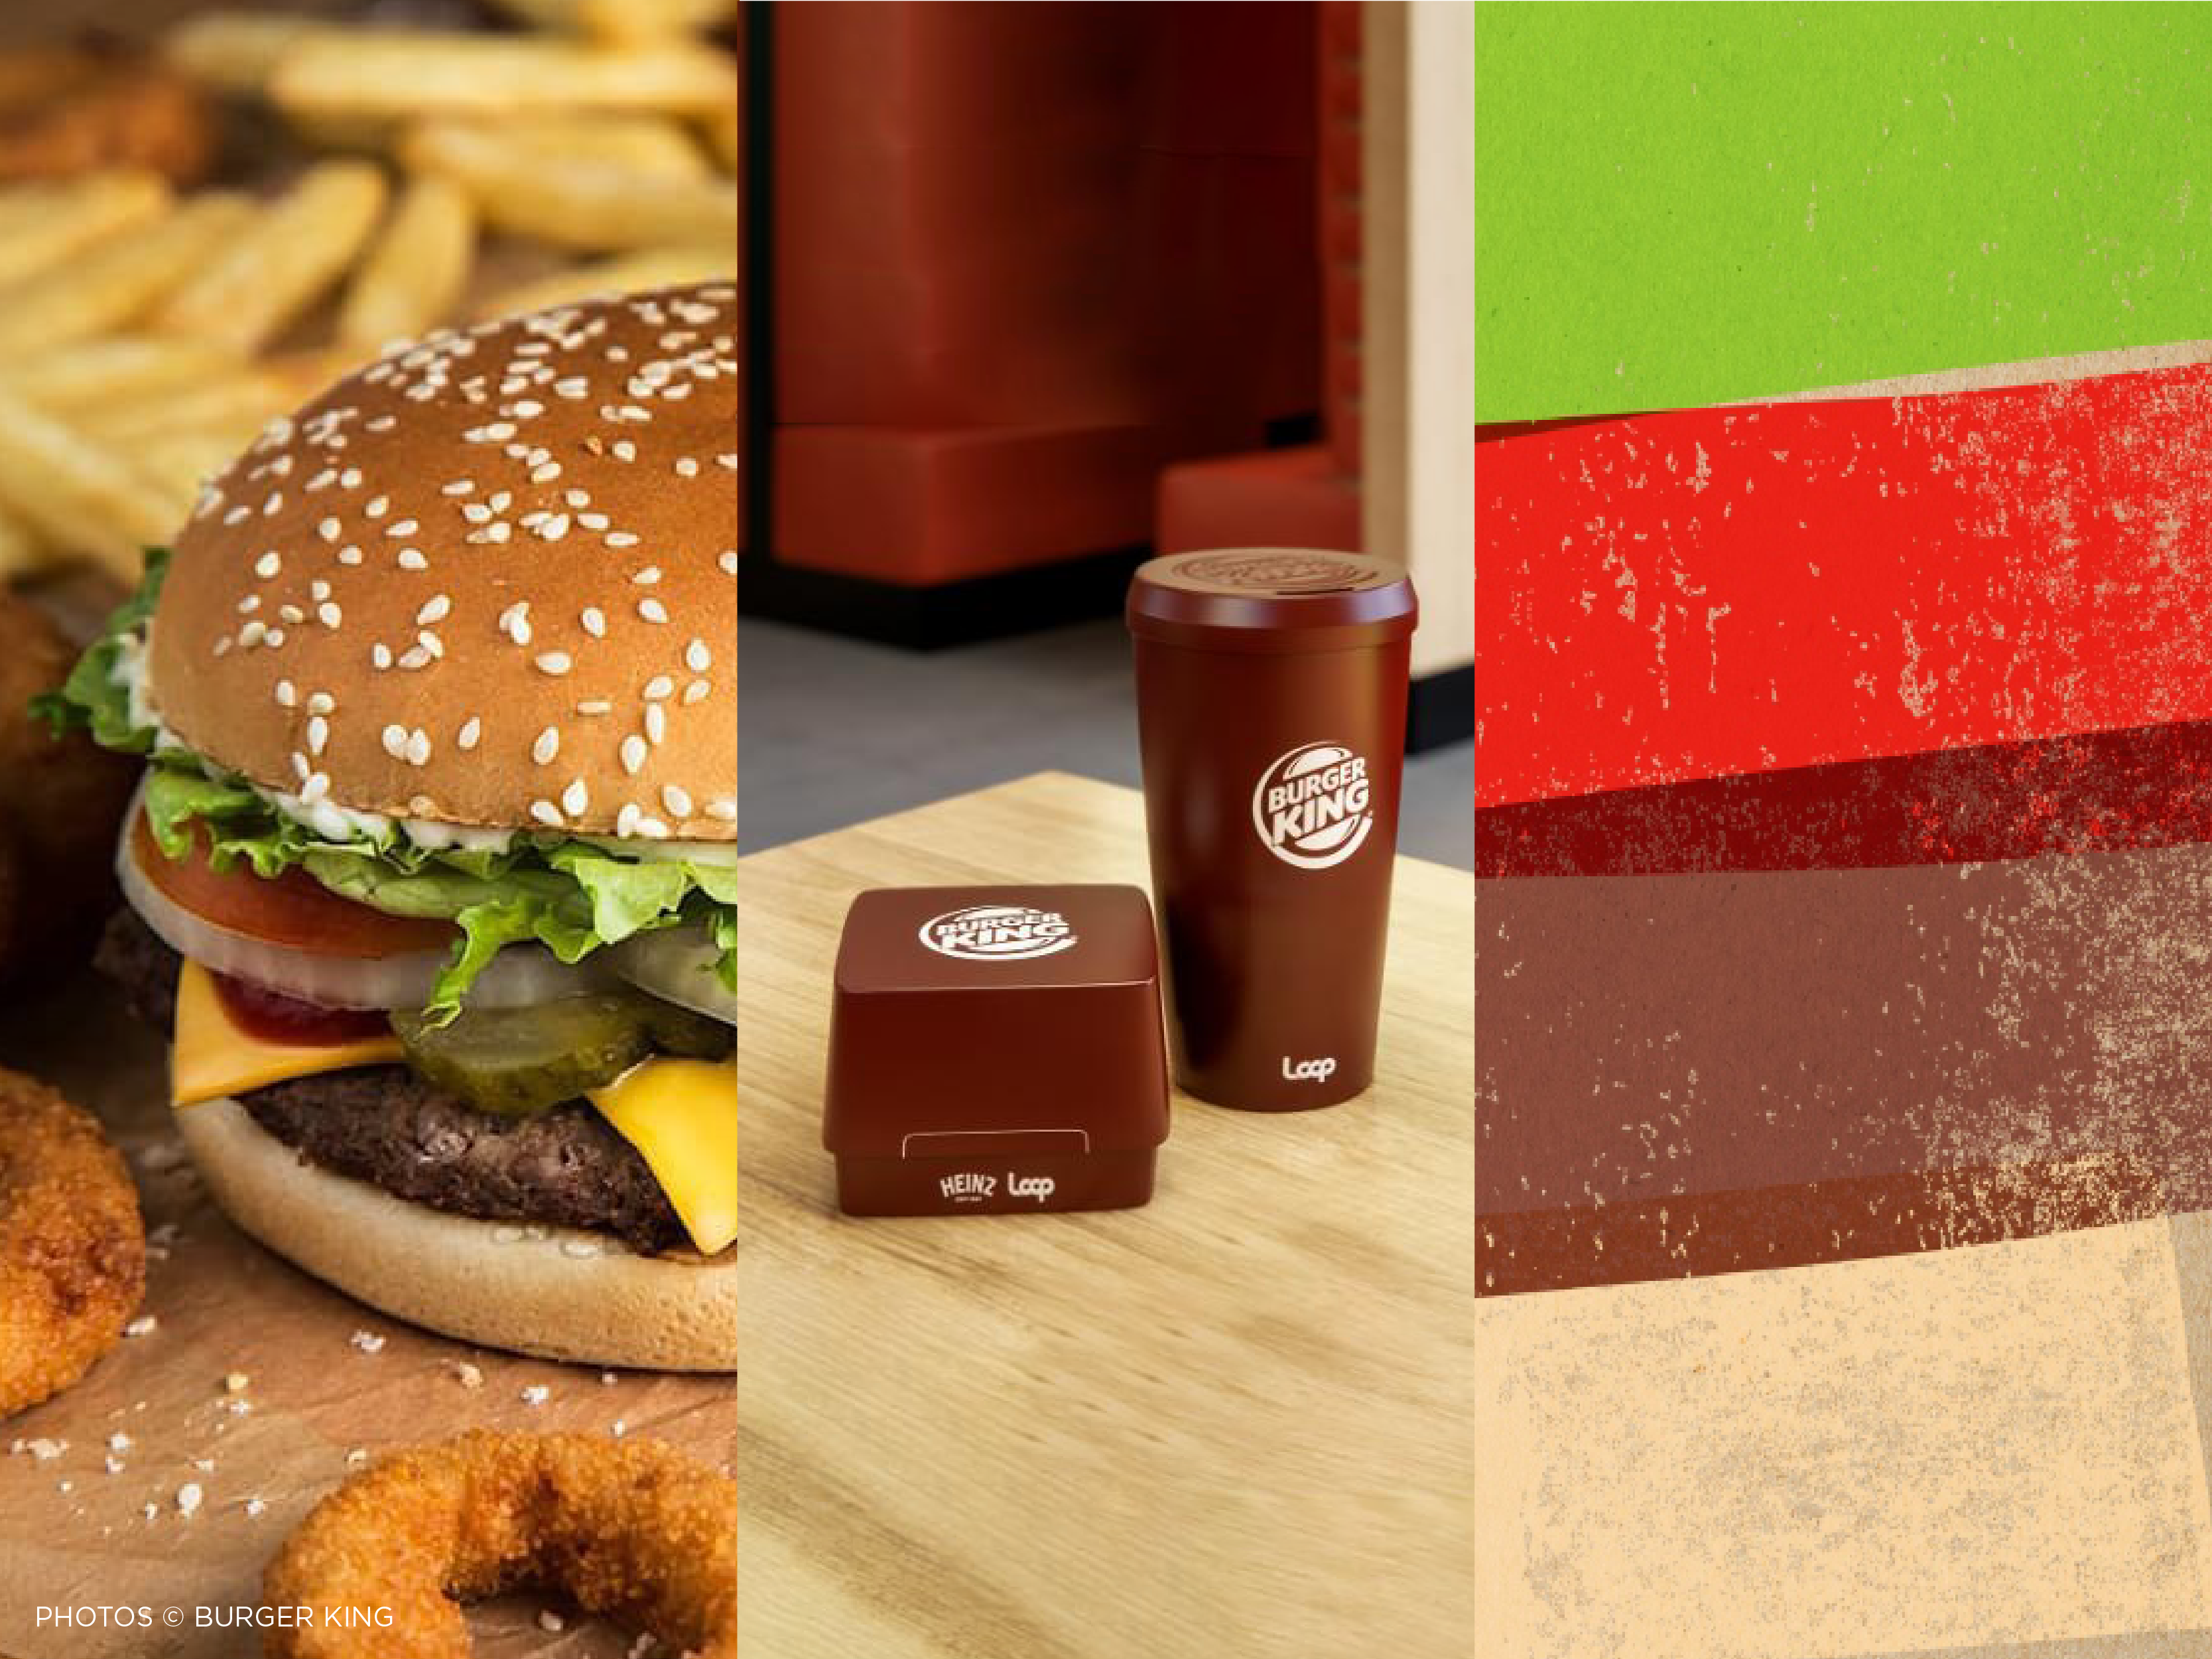 triptych image featuring Burger King's new reusable packaging